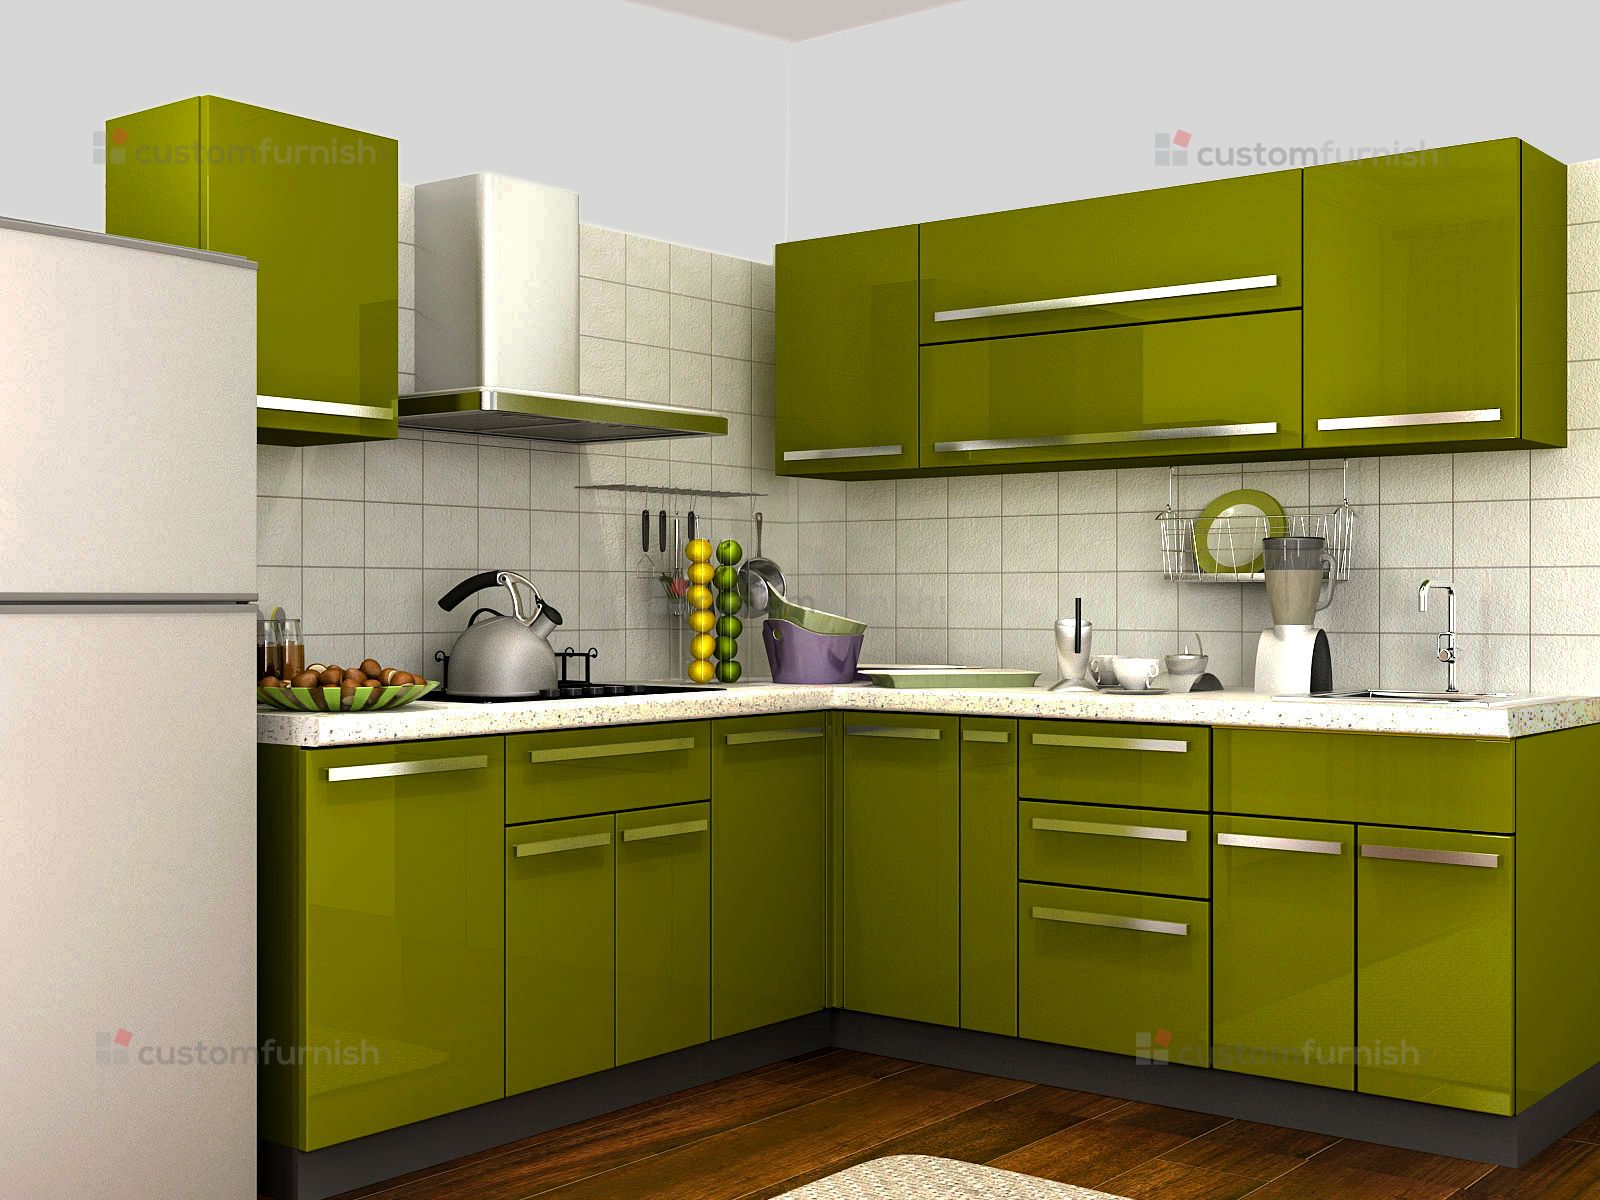 Customfurnish Com L Shaped Green Kitchen Kitchen Furniture